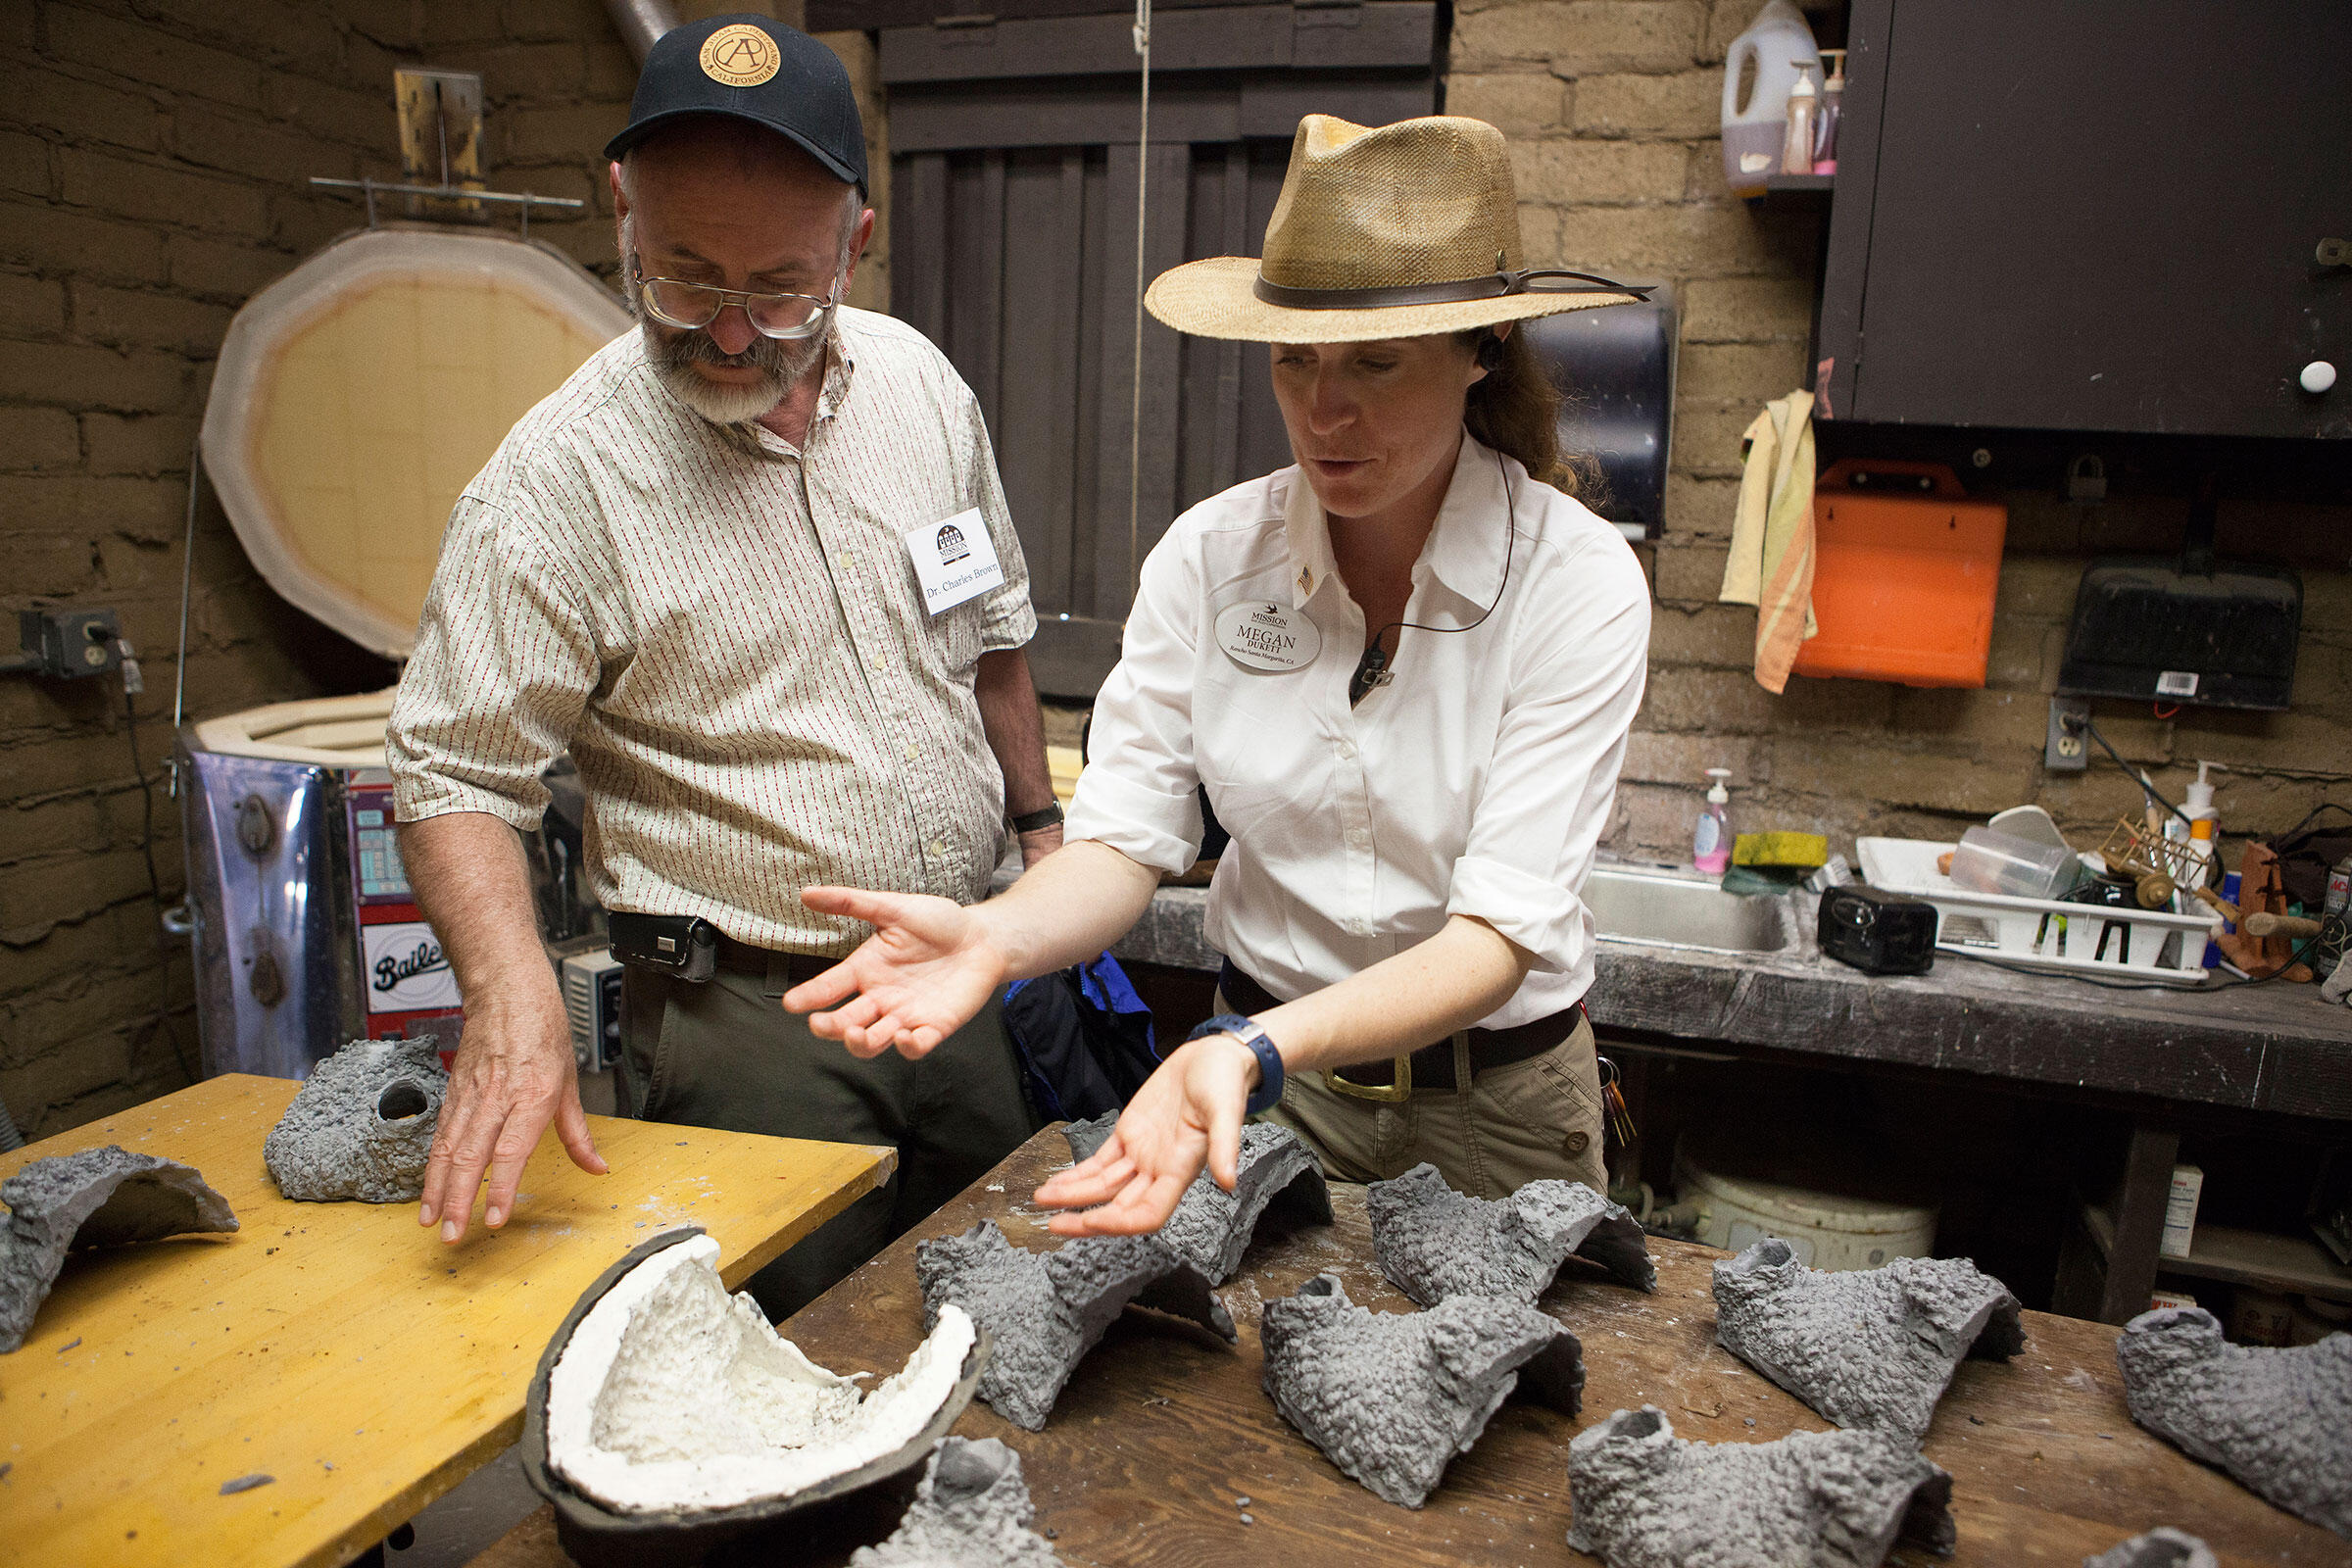 Charles Brown and Megan Dukett, the mission's education and interpretive program manager, discuss construction of the plaster nests, which were made from a mold created by one of Brown's grad students. Troy Harvey